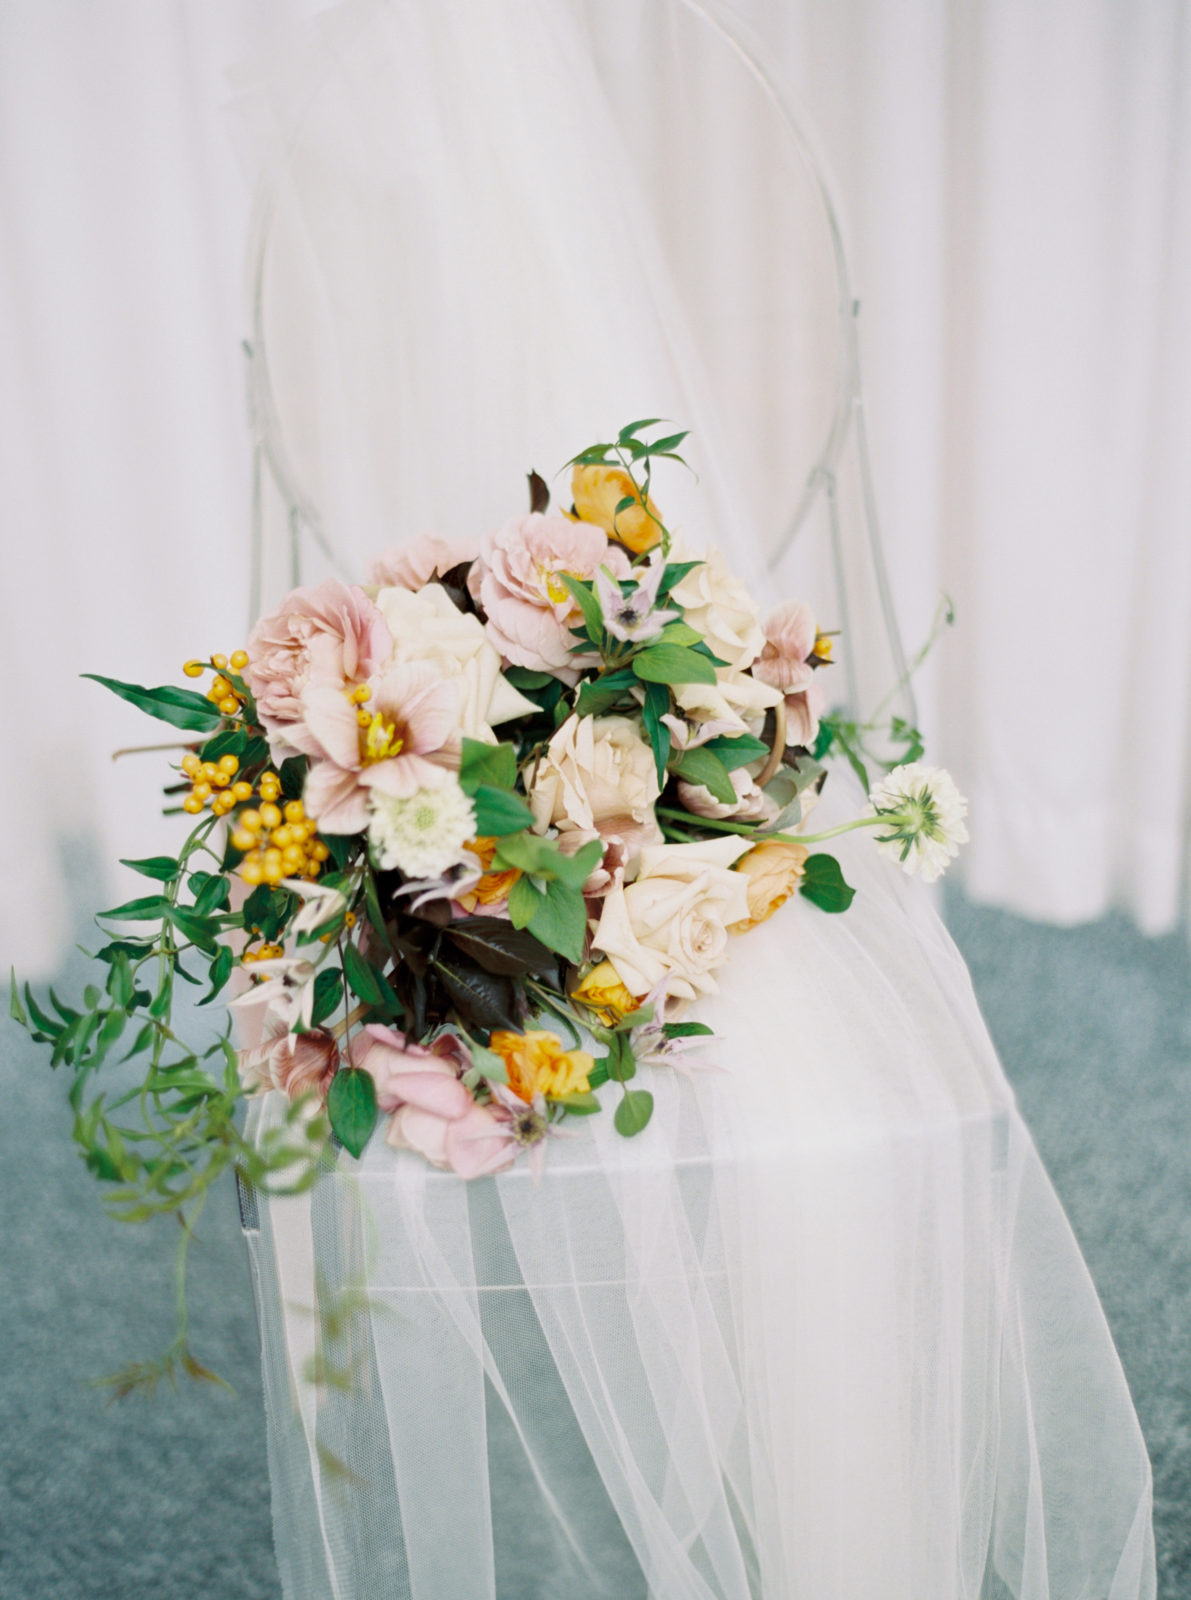 Alba Dahlia Floral Wedding Bouquet: Modern Ethereal Wedding Inspiration at The Joule on Alexa Kay Events